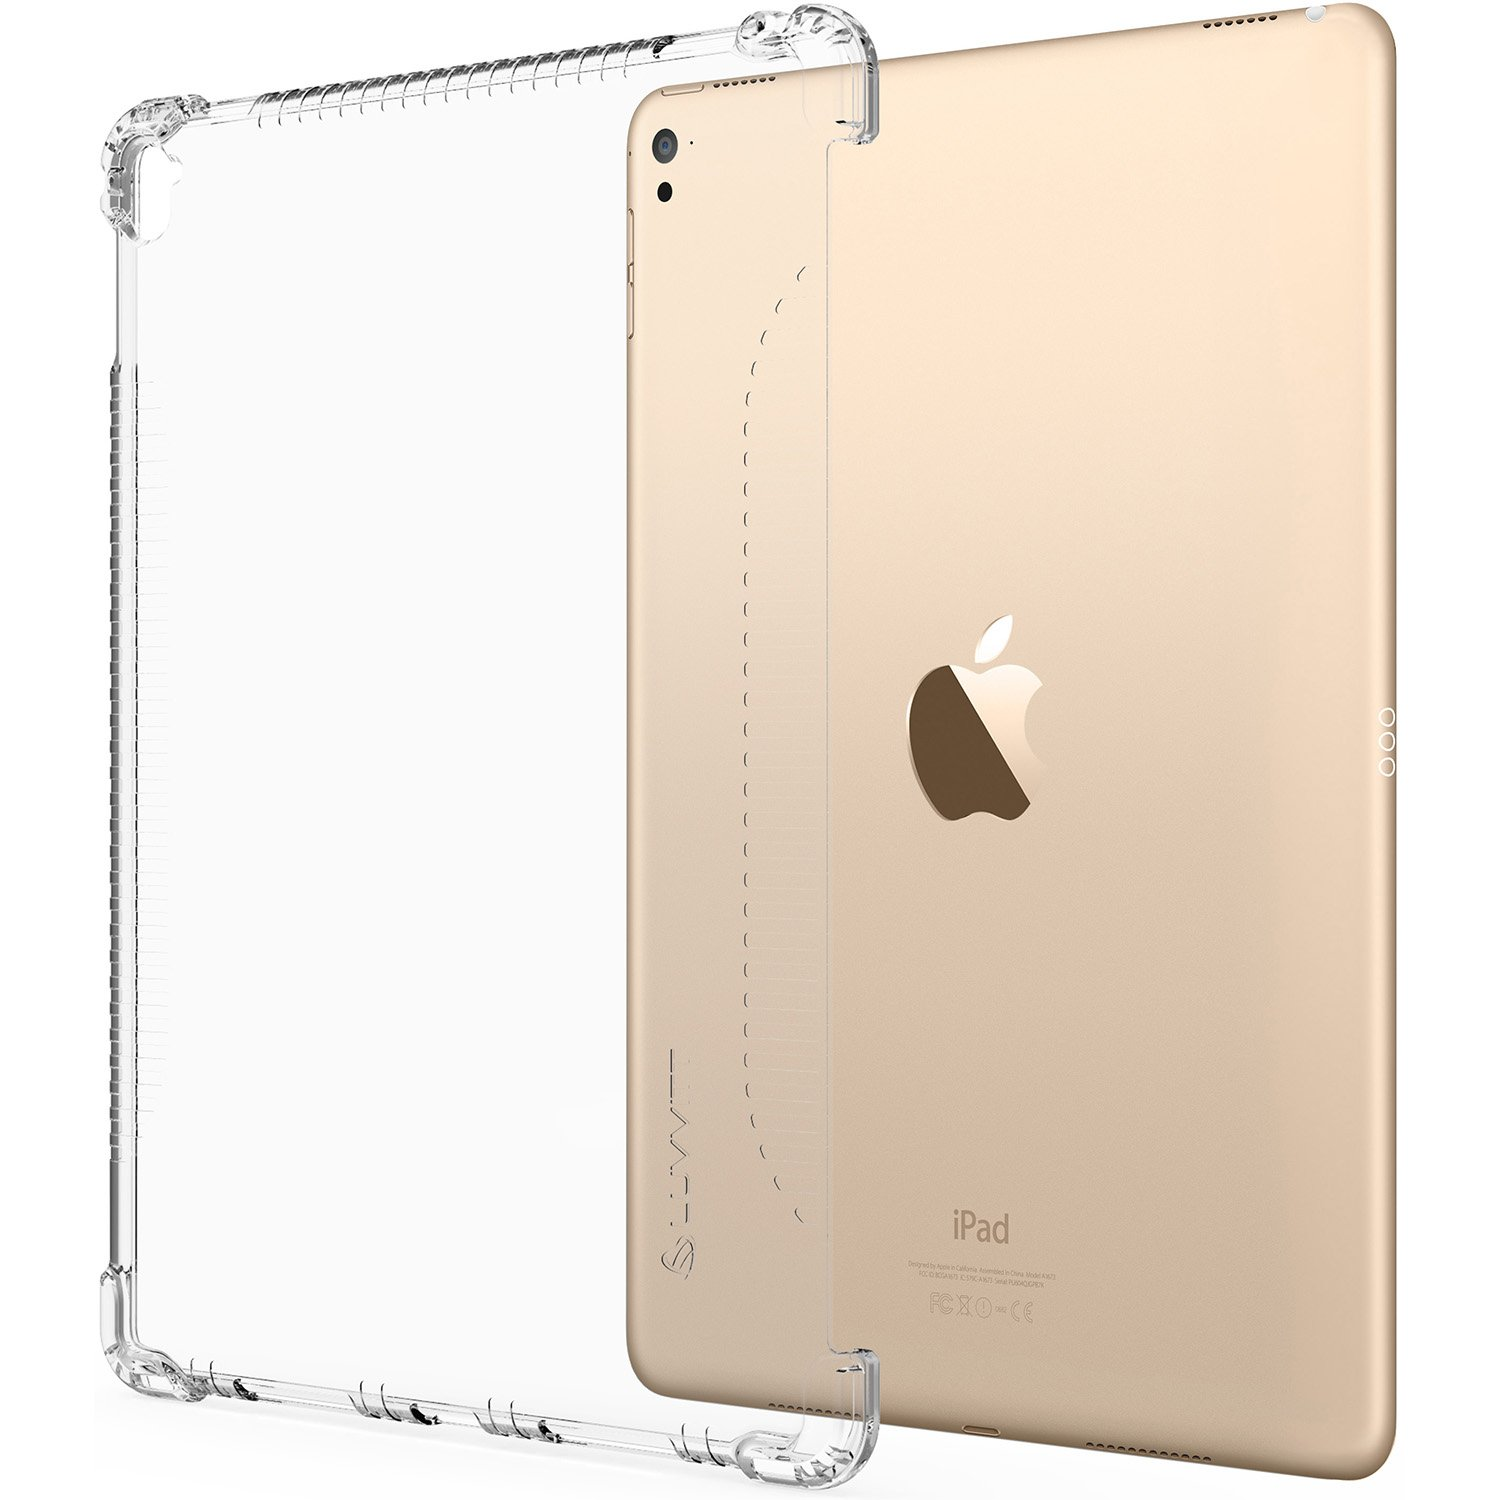 iPad 9.7 Case, LUVVITT Clear Grip Smart Cover and Keyboard Compatible Case for Apple iPad 9.7 inch 5th and 6th Generation (2017-2018) - Clear (Not Compatible with Pro)